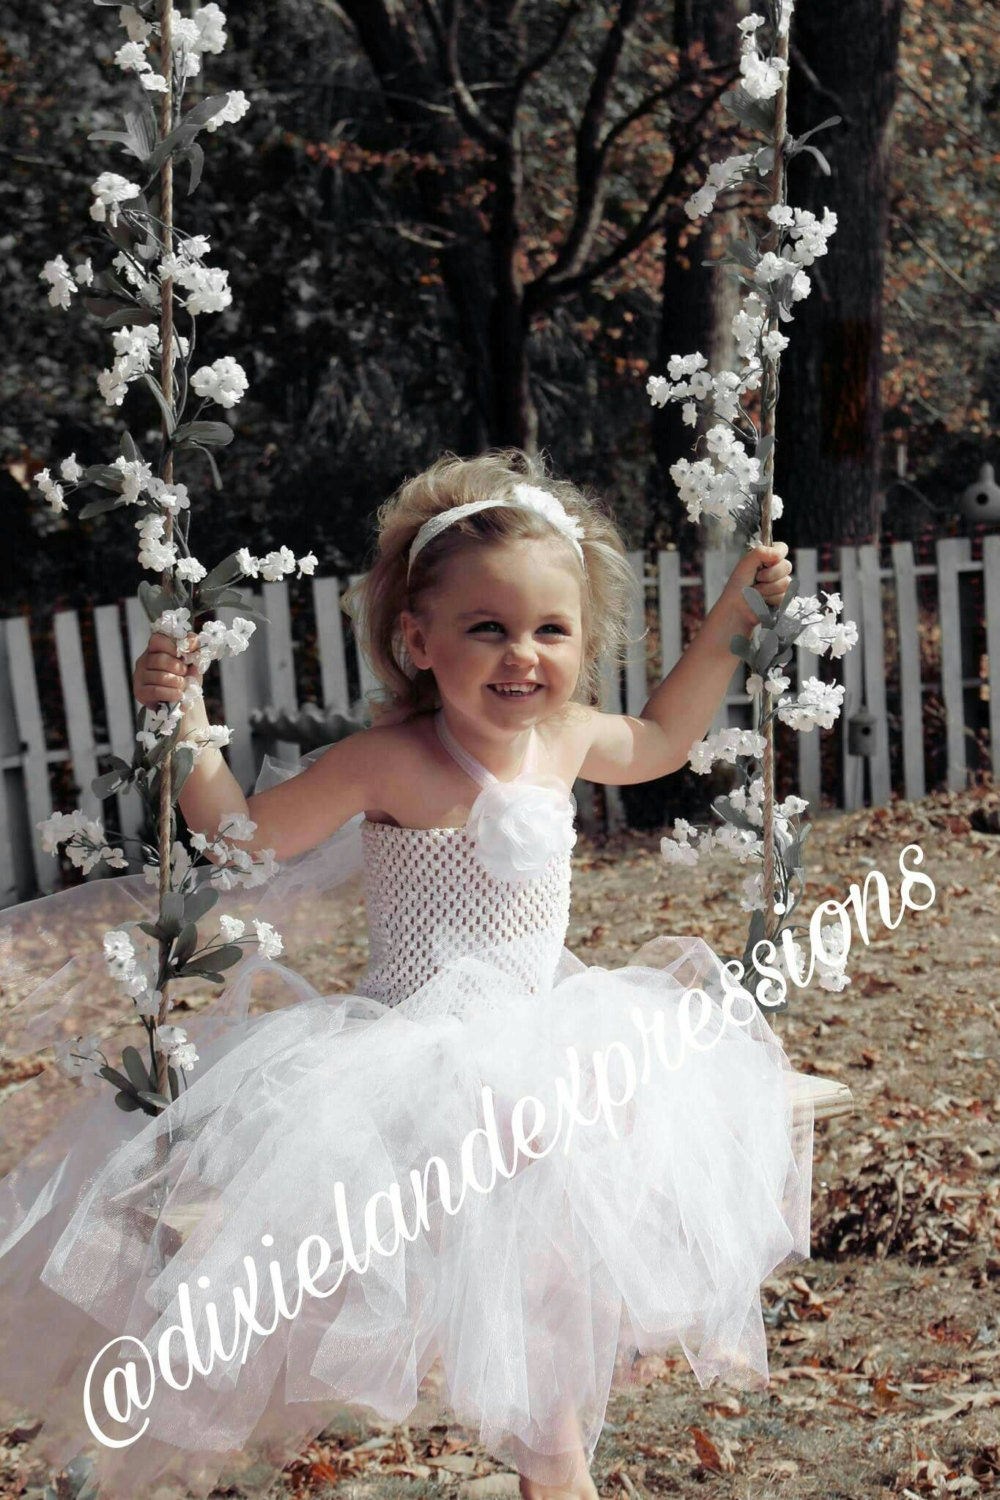 White tulle flower girl dress toddler tutu dress tulle wedding white tulle flower girl dress toddler tutu dress tulle wedding tutu tulle flower girl dress toddler special occasion outfit party dress mightylinksfo